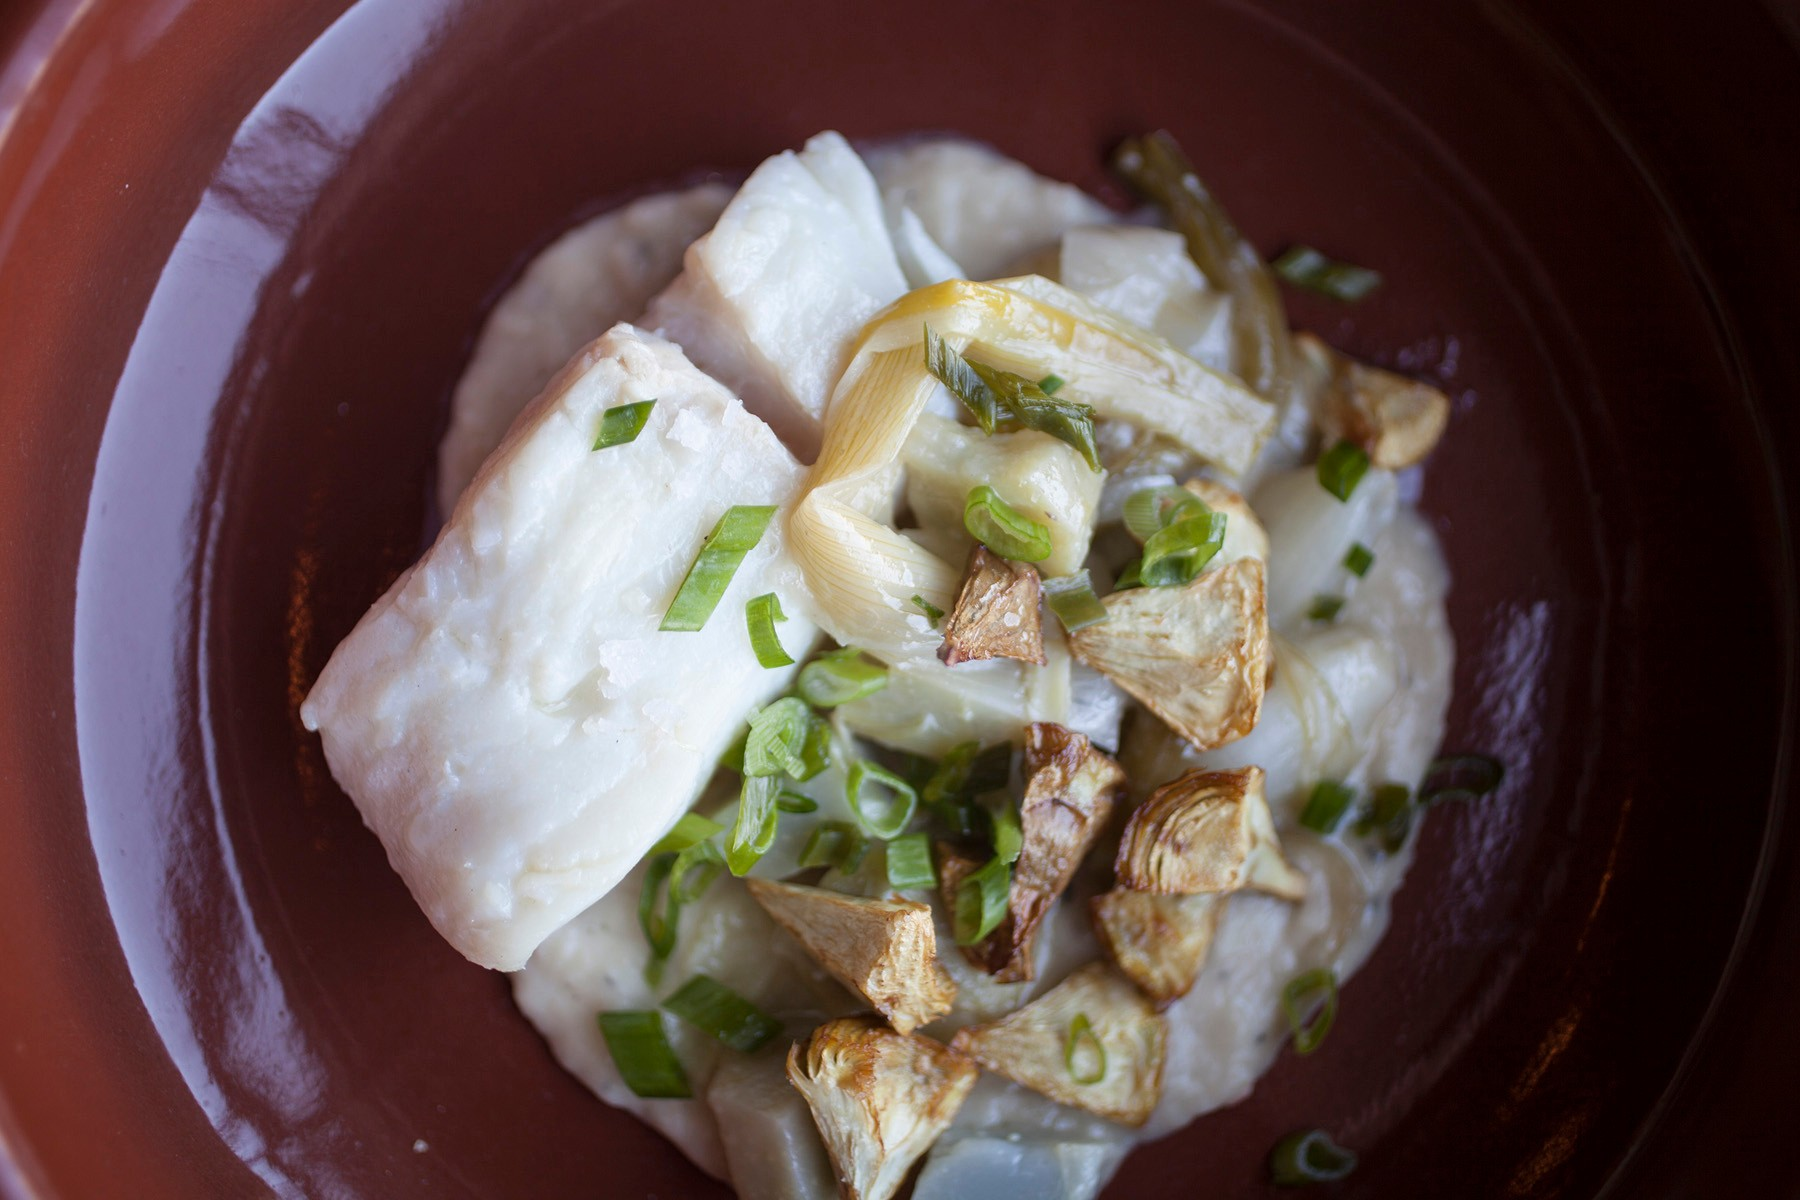 Poached halibut, fried artichokes, and artichoke puree